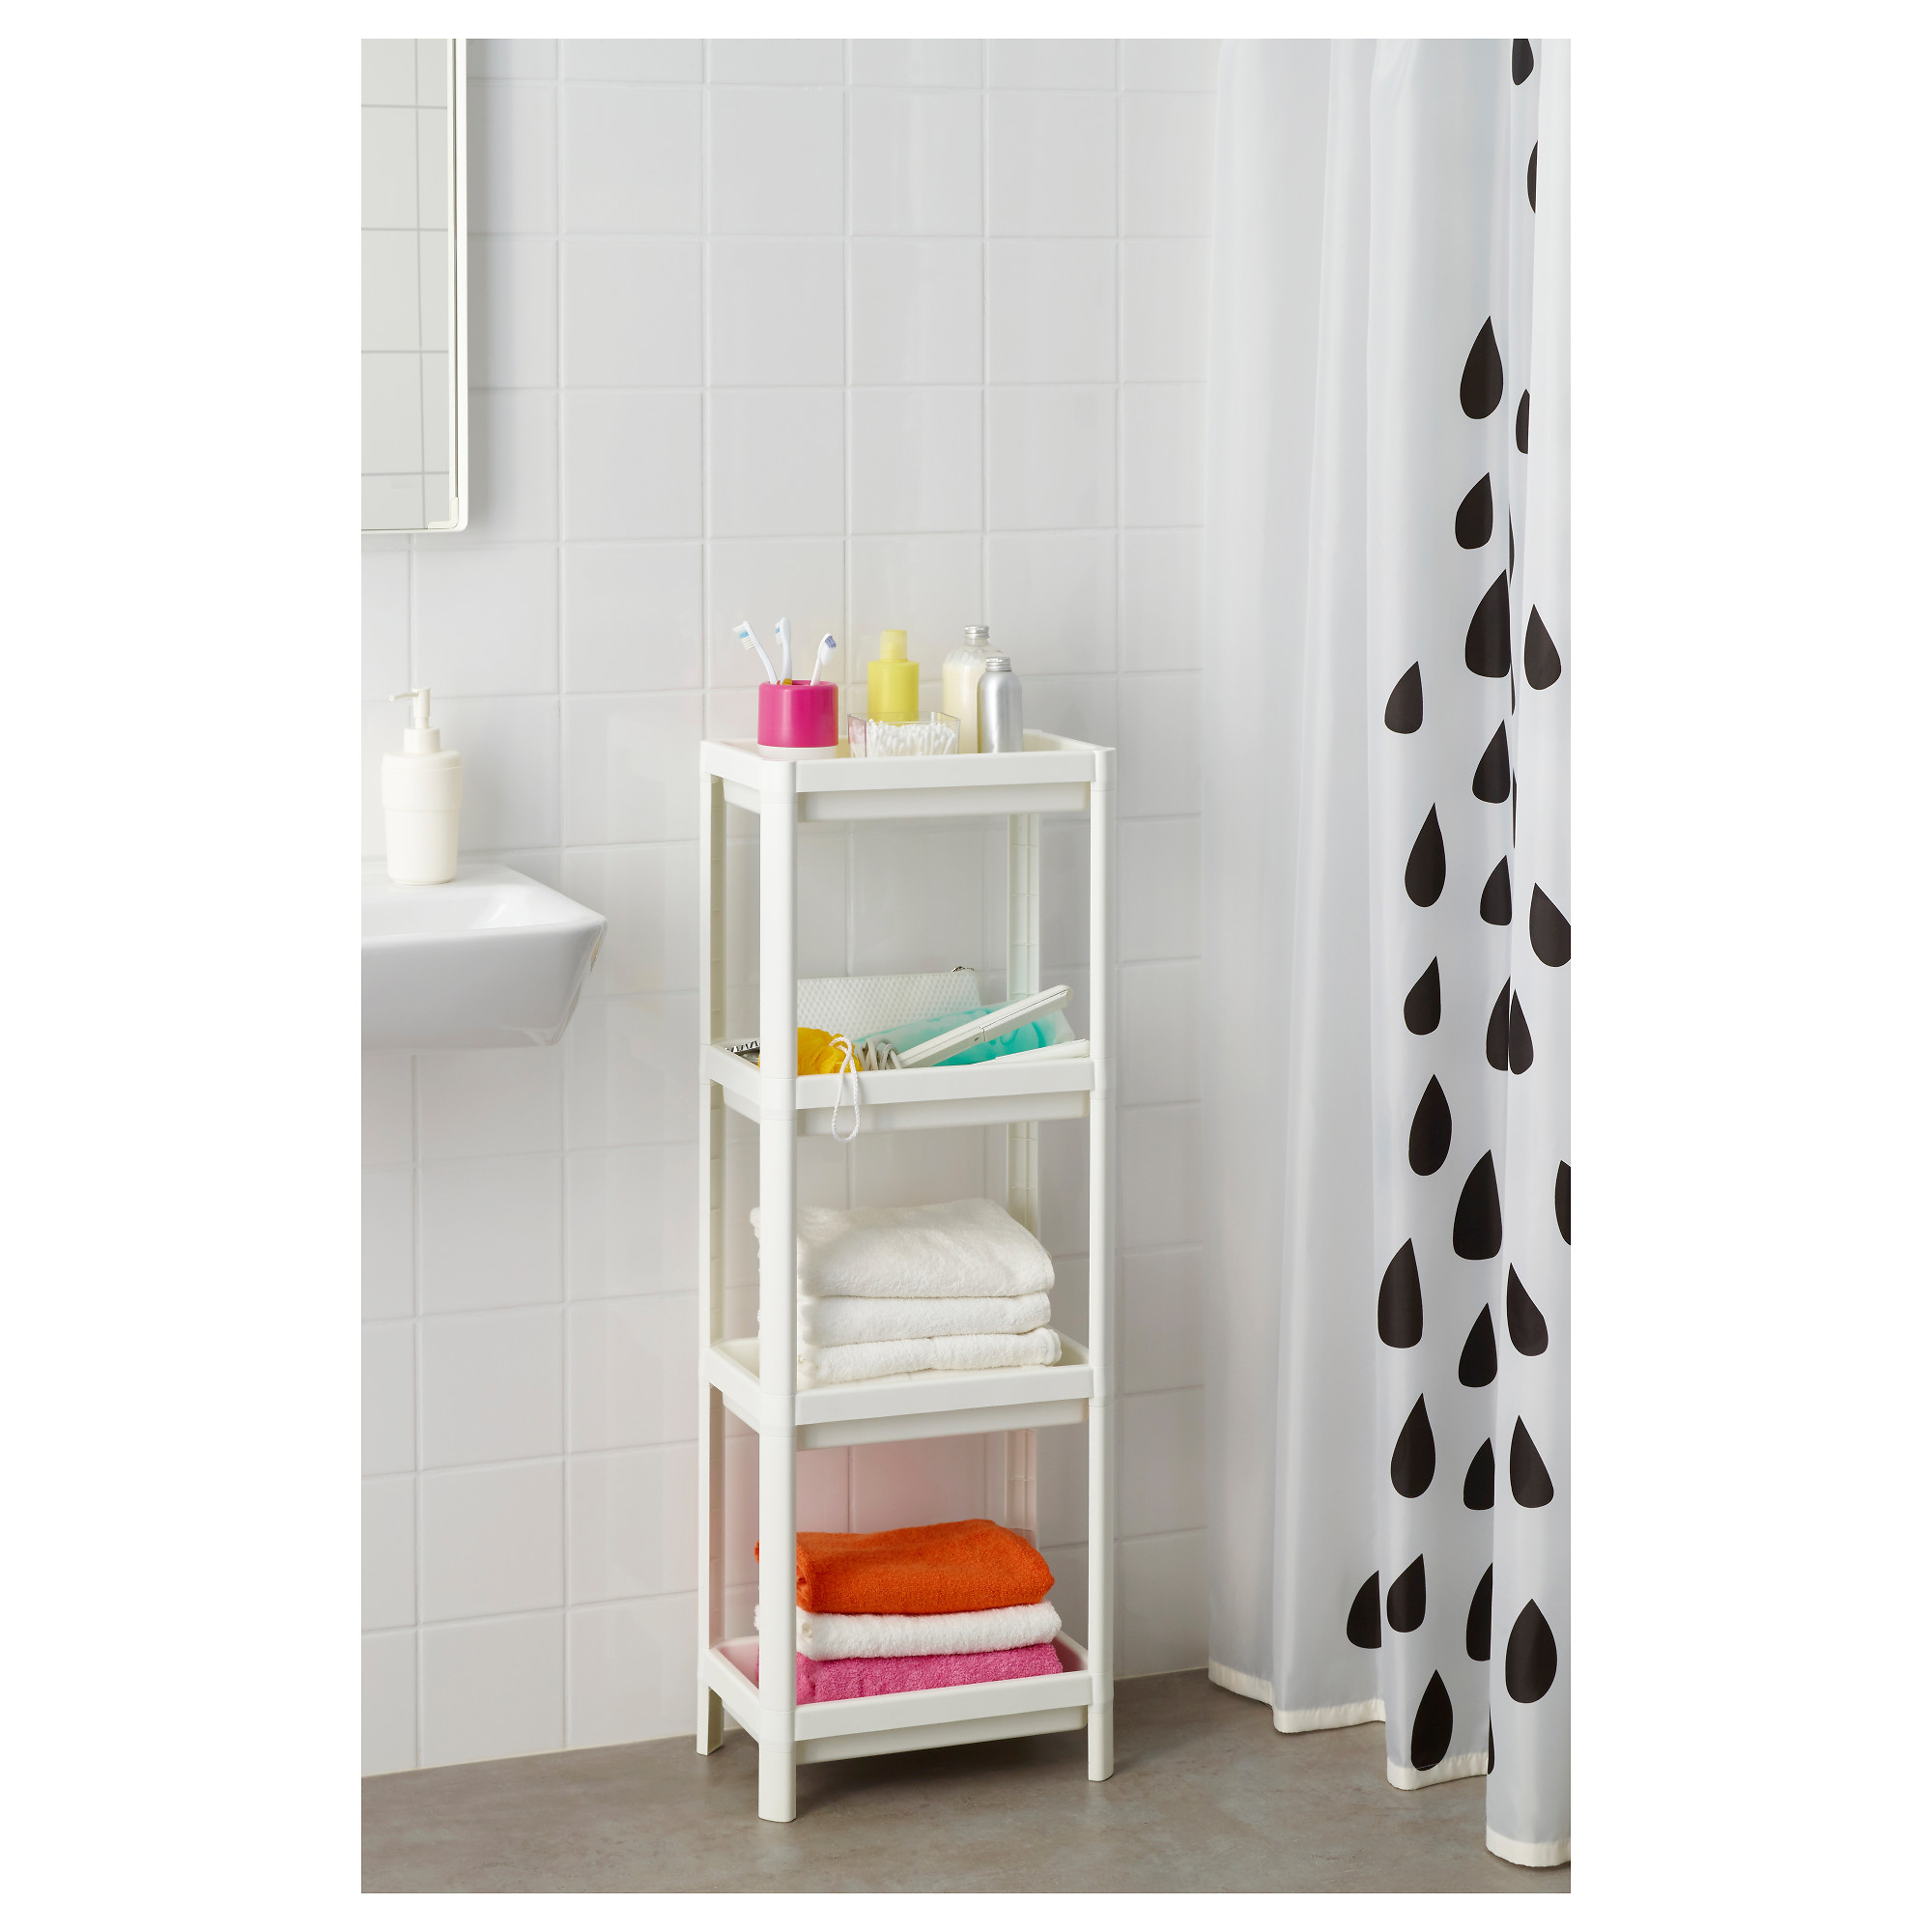 White Bathroom Shelving Unit bedroom design quotes House Designer